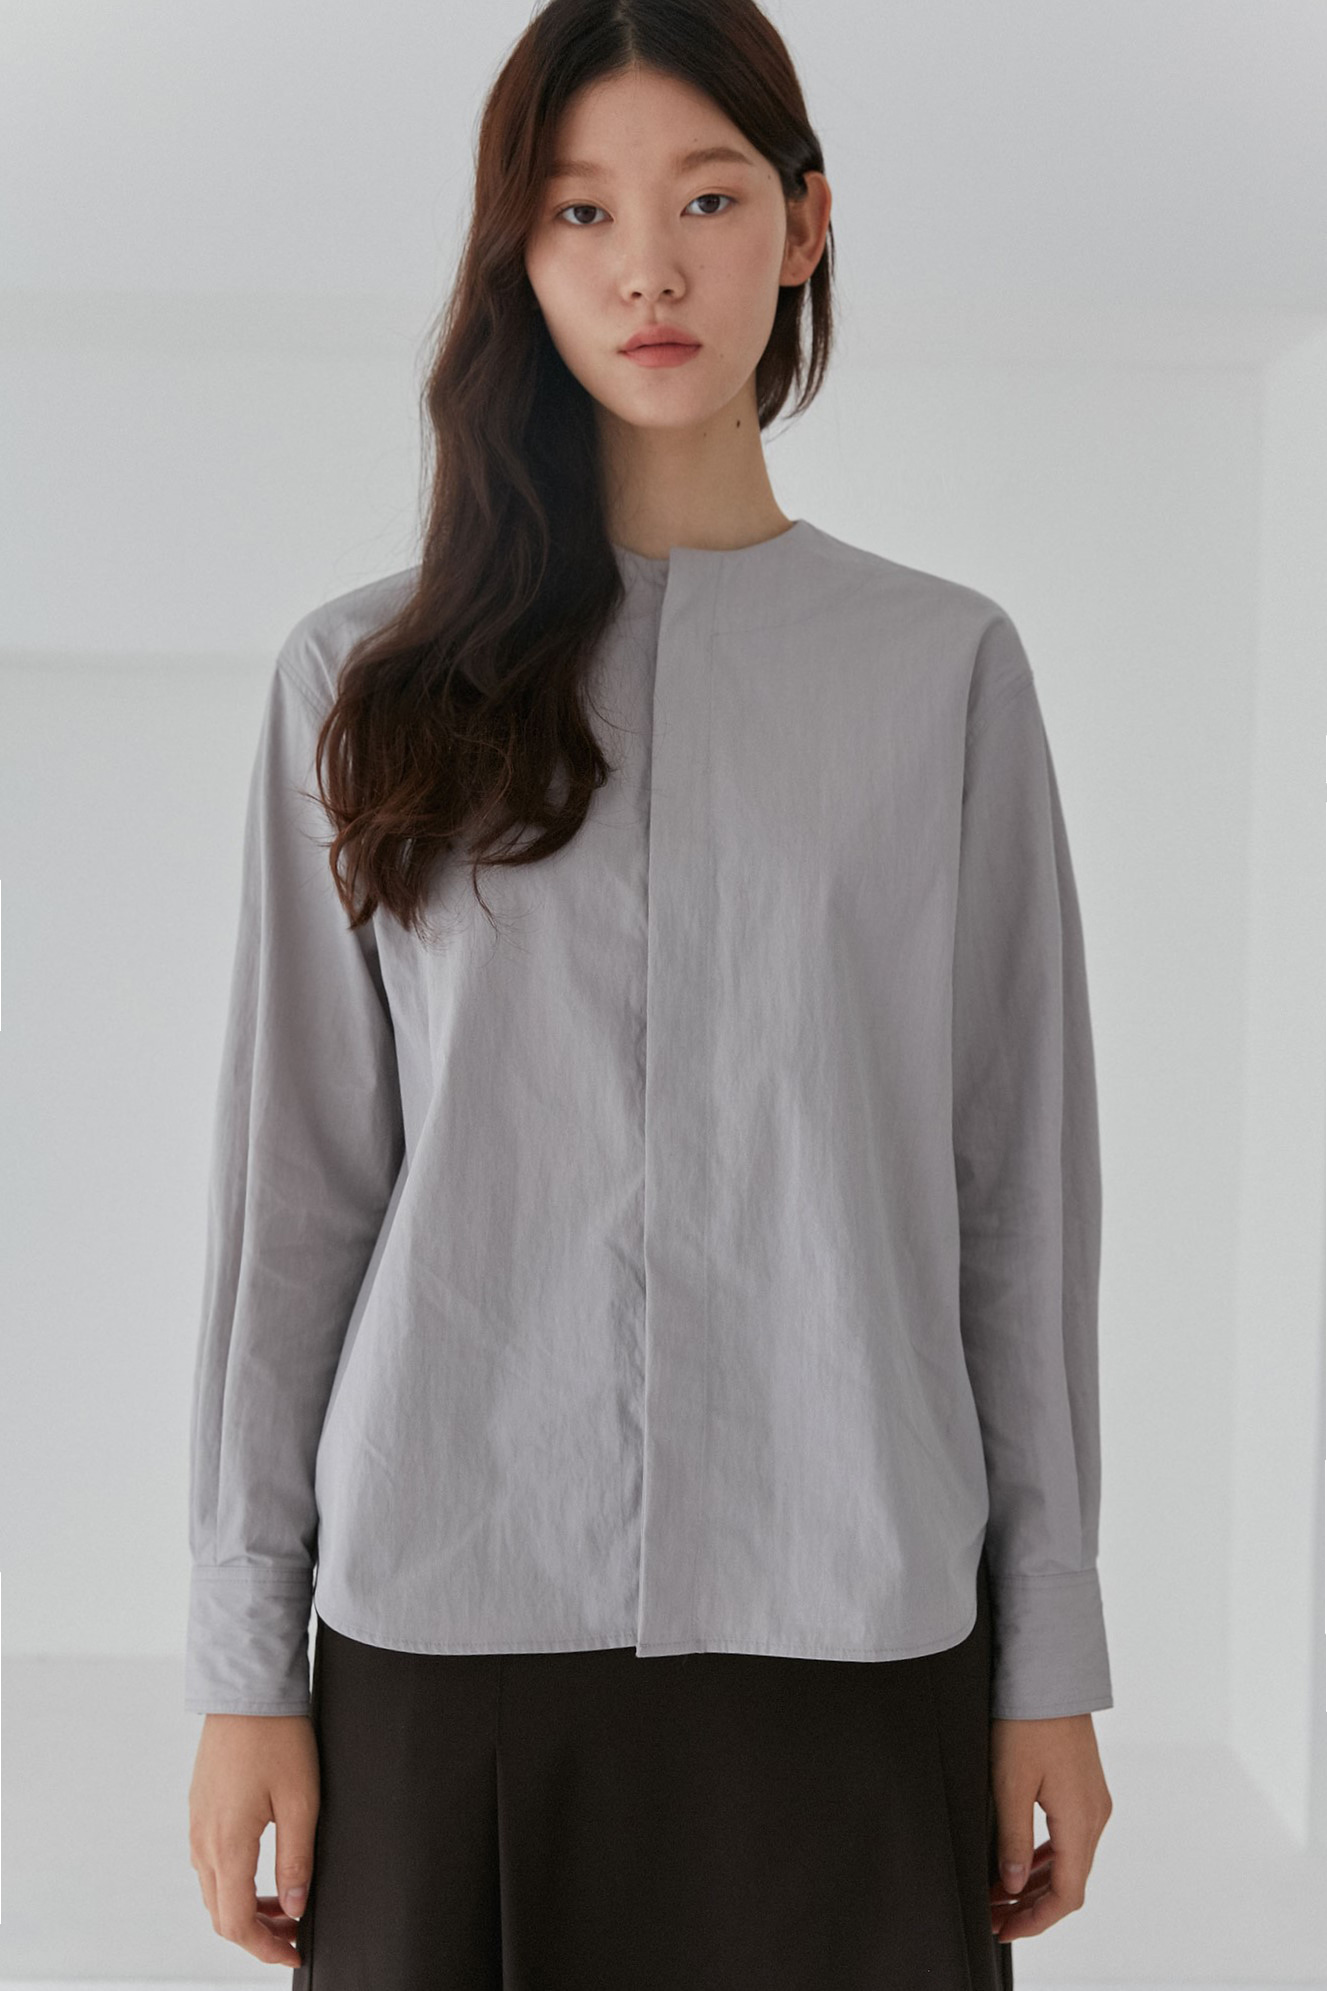 Round Blouse Women [Gray]